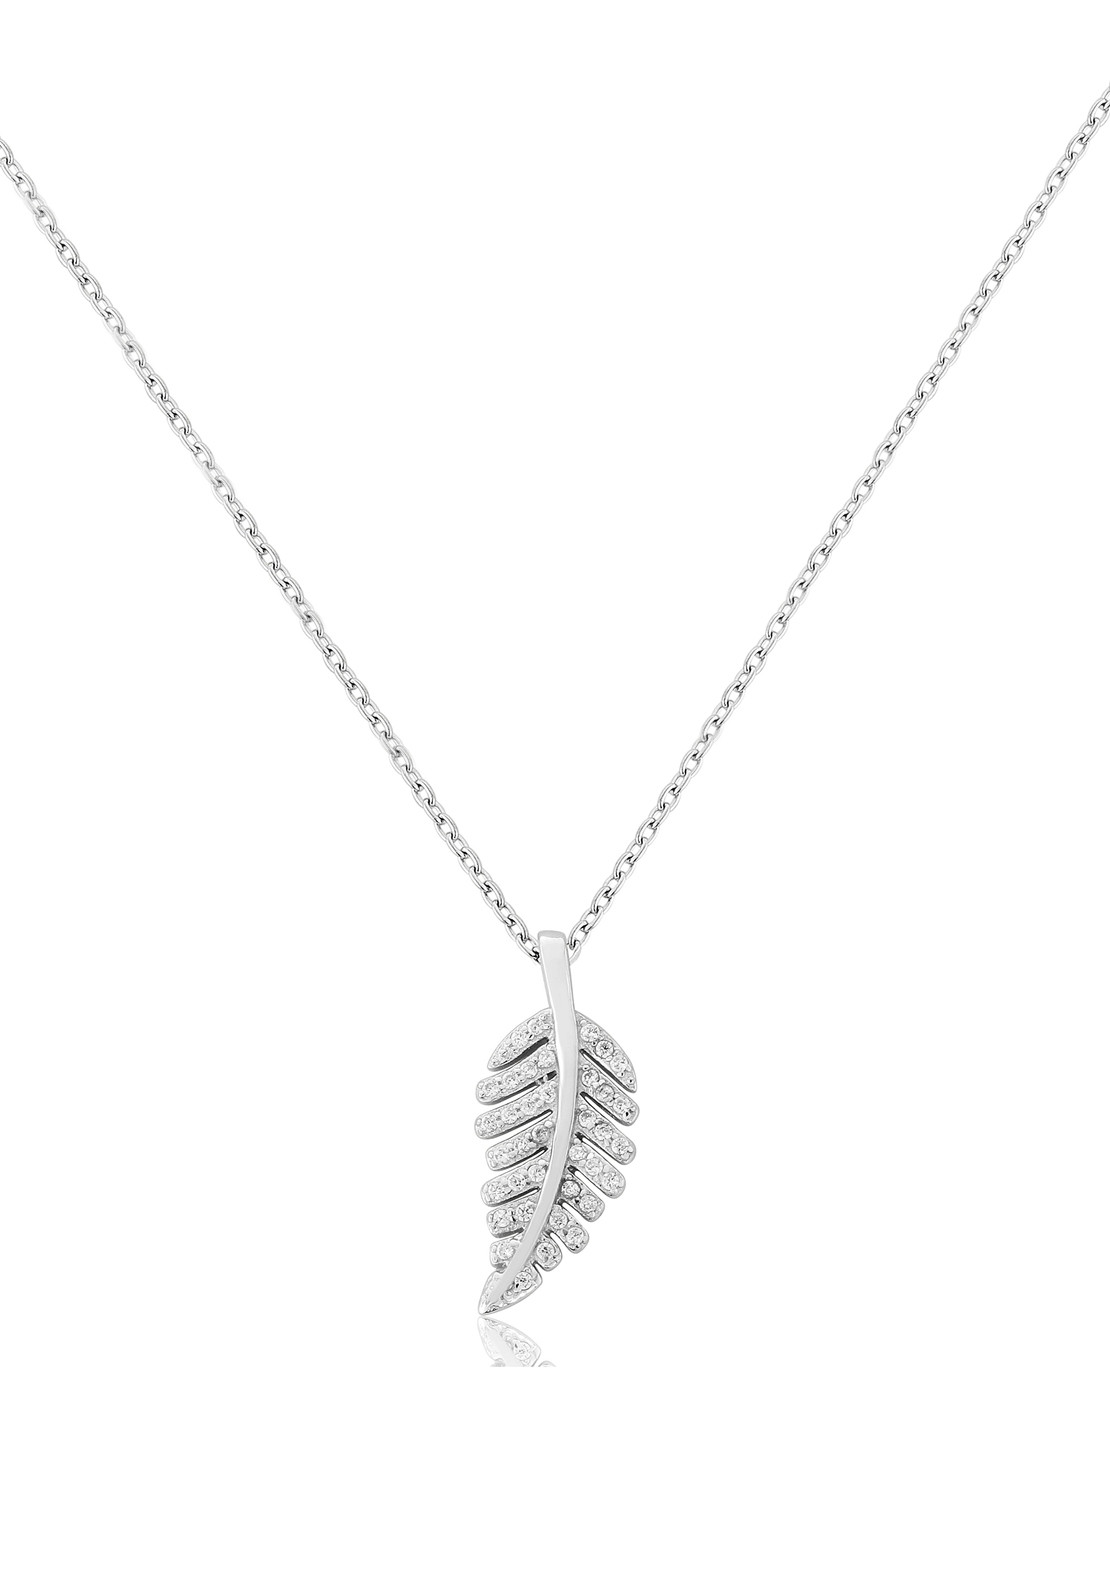 Waterford Crystal Pave Studded Feather Pendant Necklace, Silver